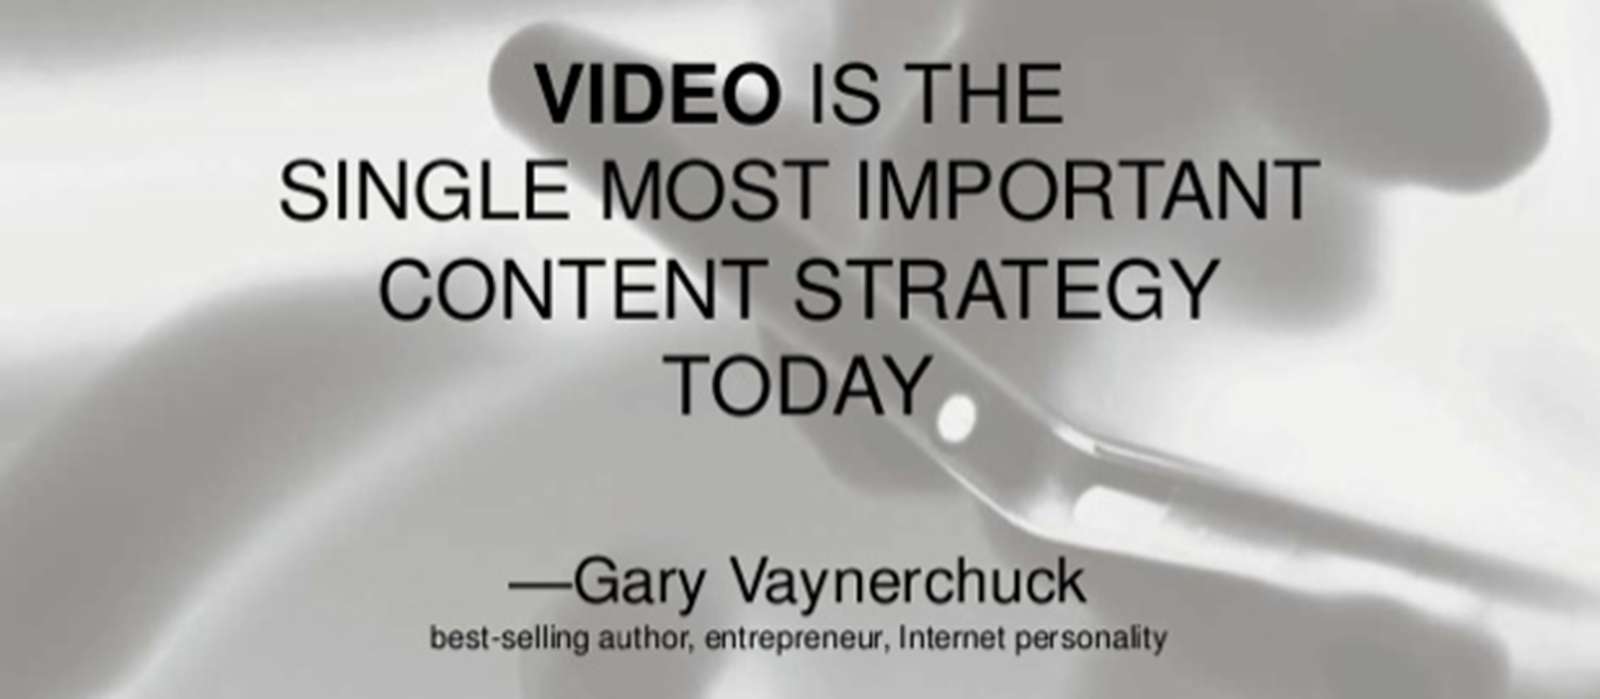 Video is the single most important content strategy today. - Gary Vaynerchuck, best-selling author, entrepreneur, Internet personality